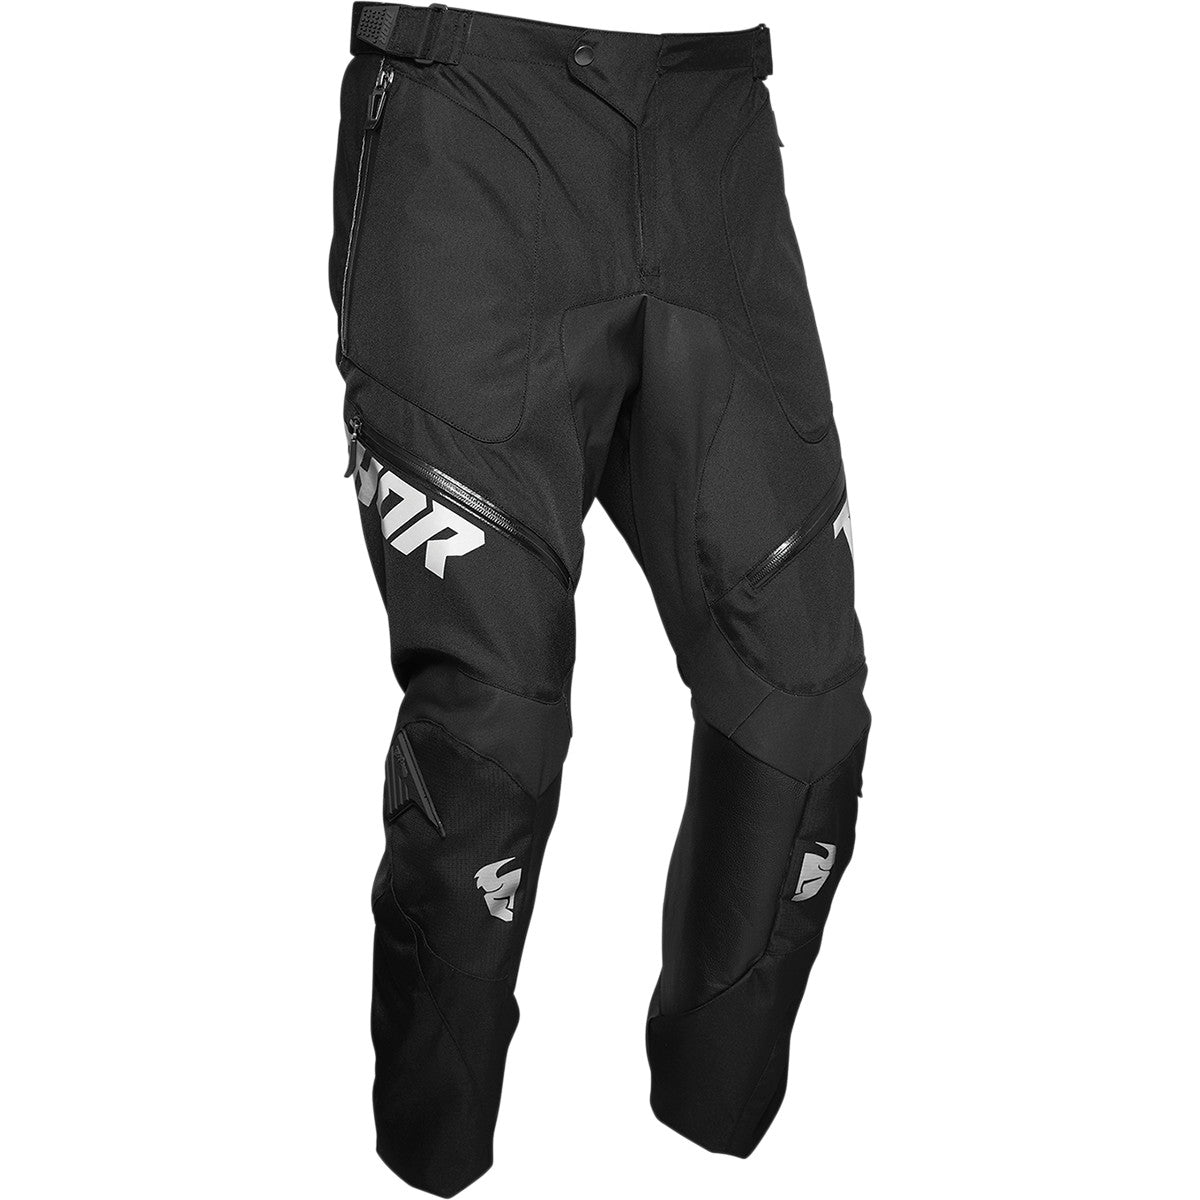 Seven Annex Staple Mens Off-Road Motorcycle Pants White//Size 34